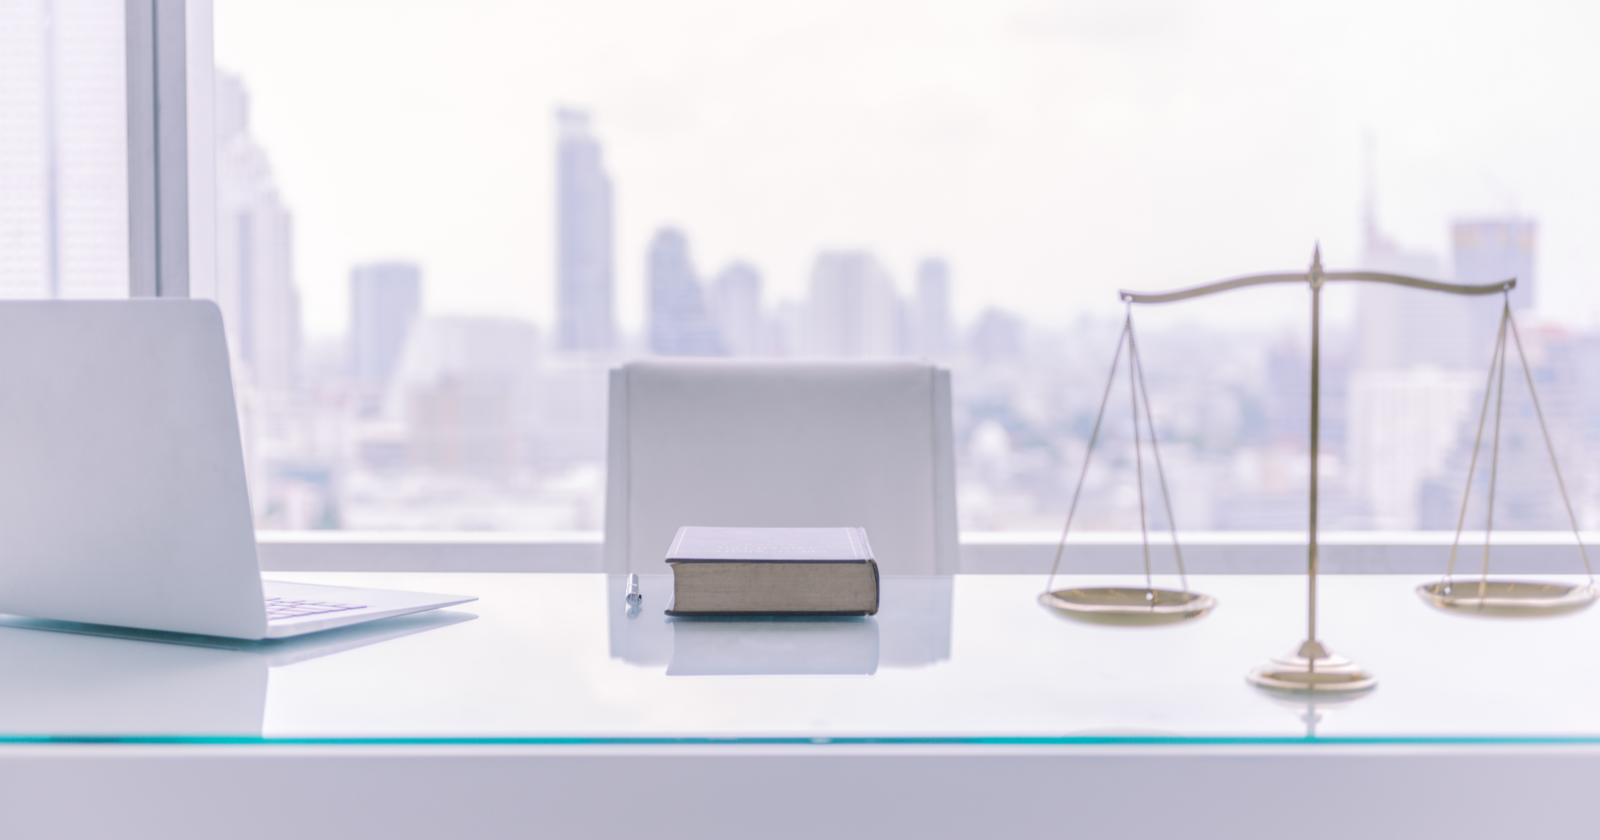 seo content writing for law firms 5e5793e5360d3